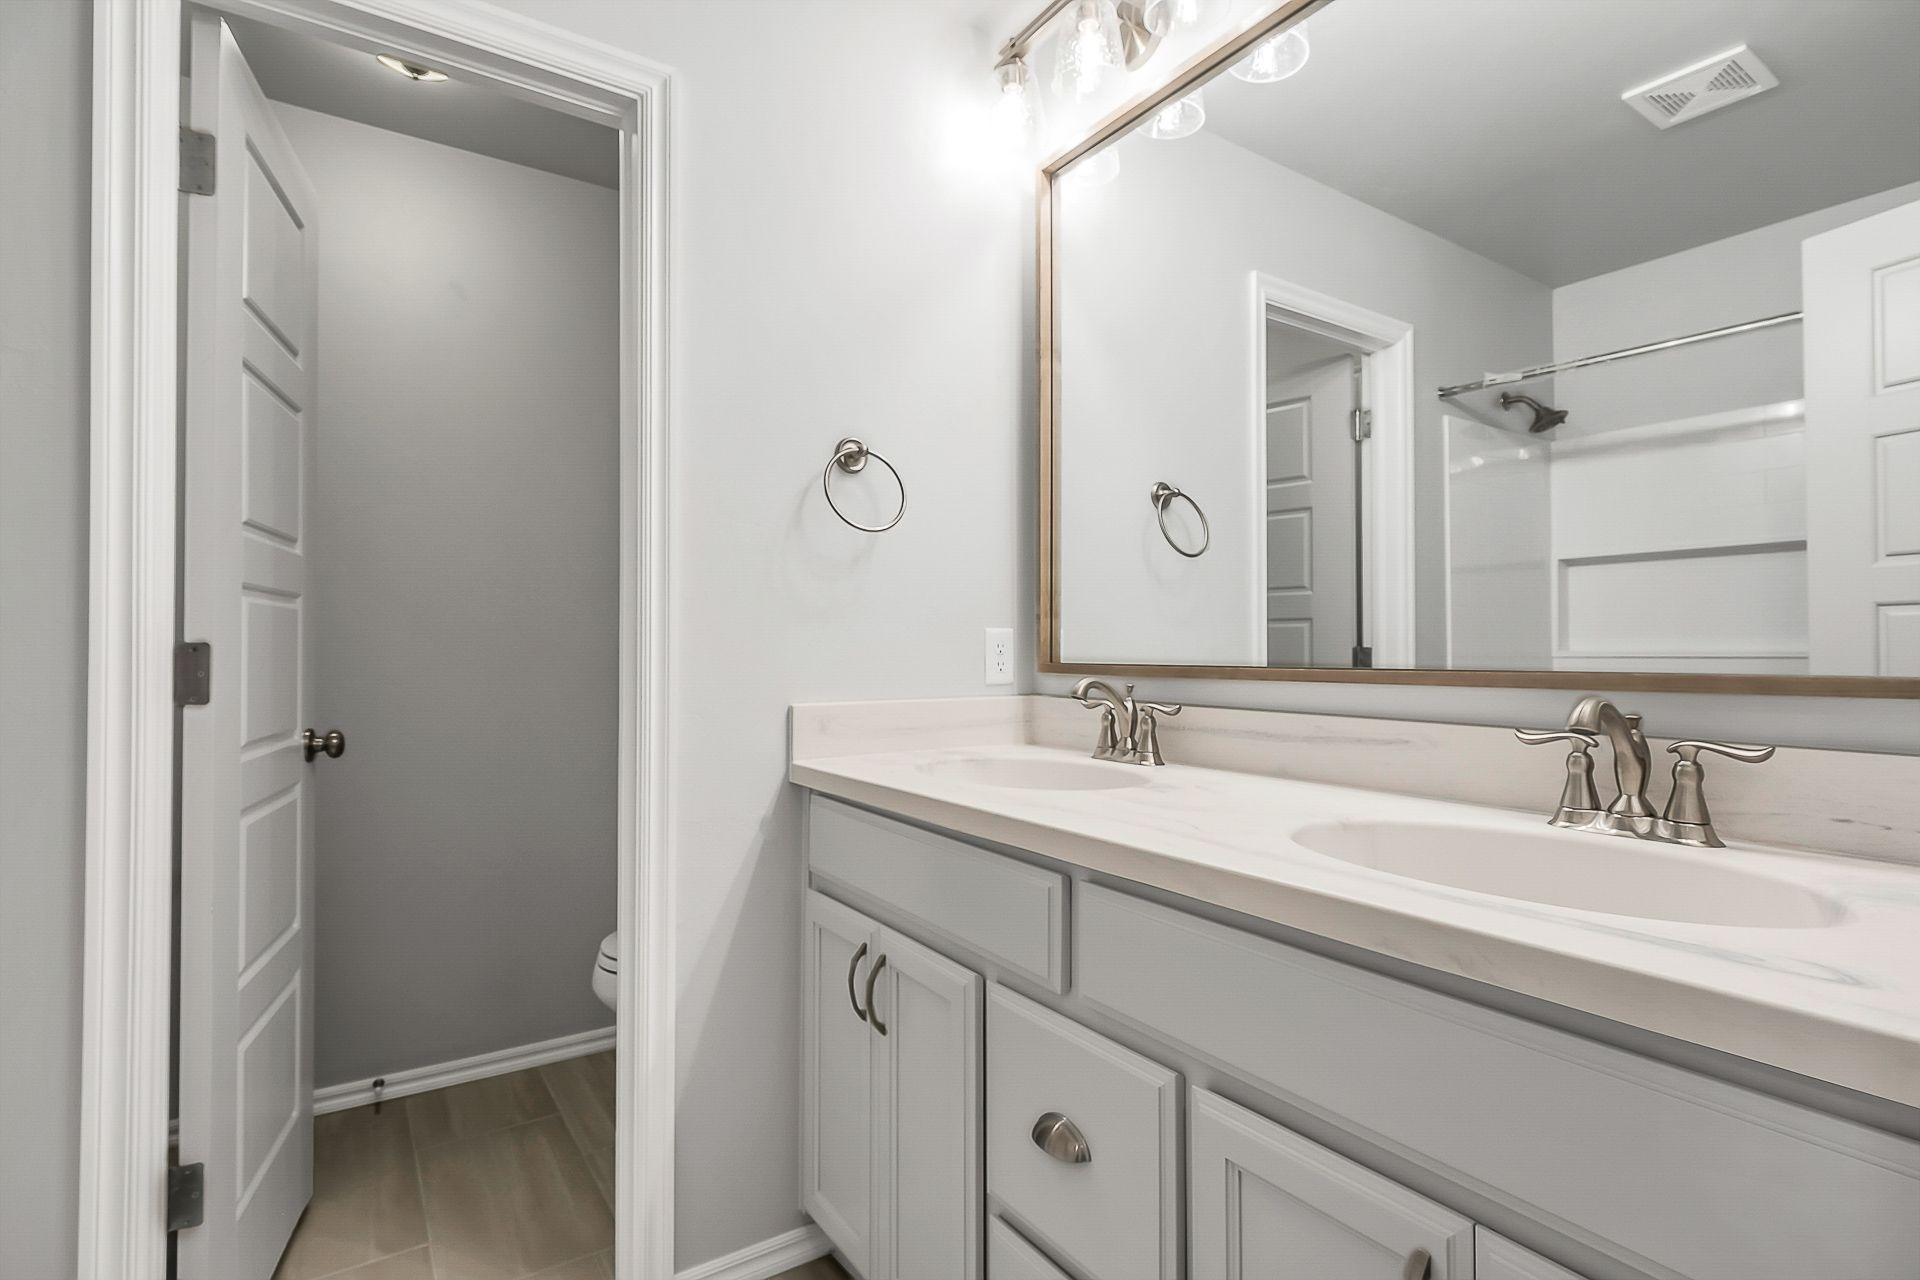 Bathroom featured in the Pendleton By Ideal Homes in Oklahoma City, OK